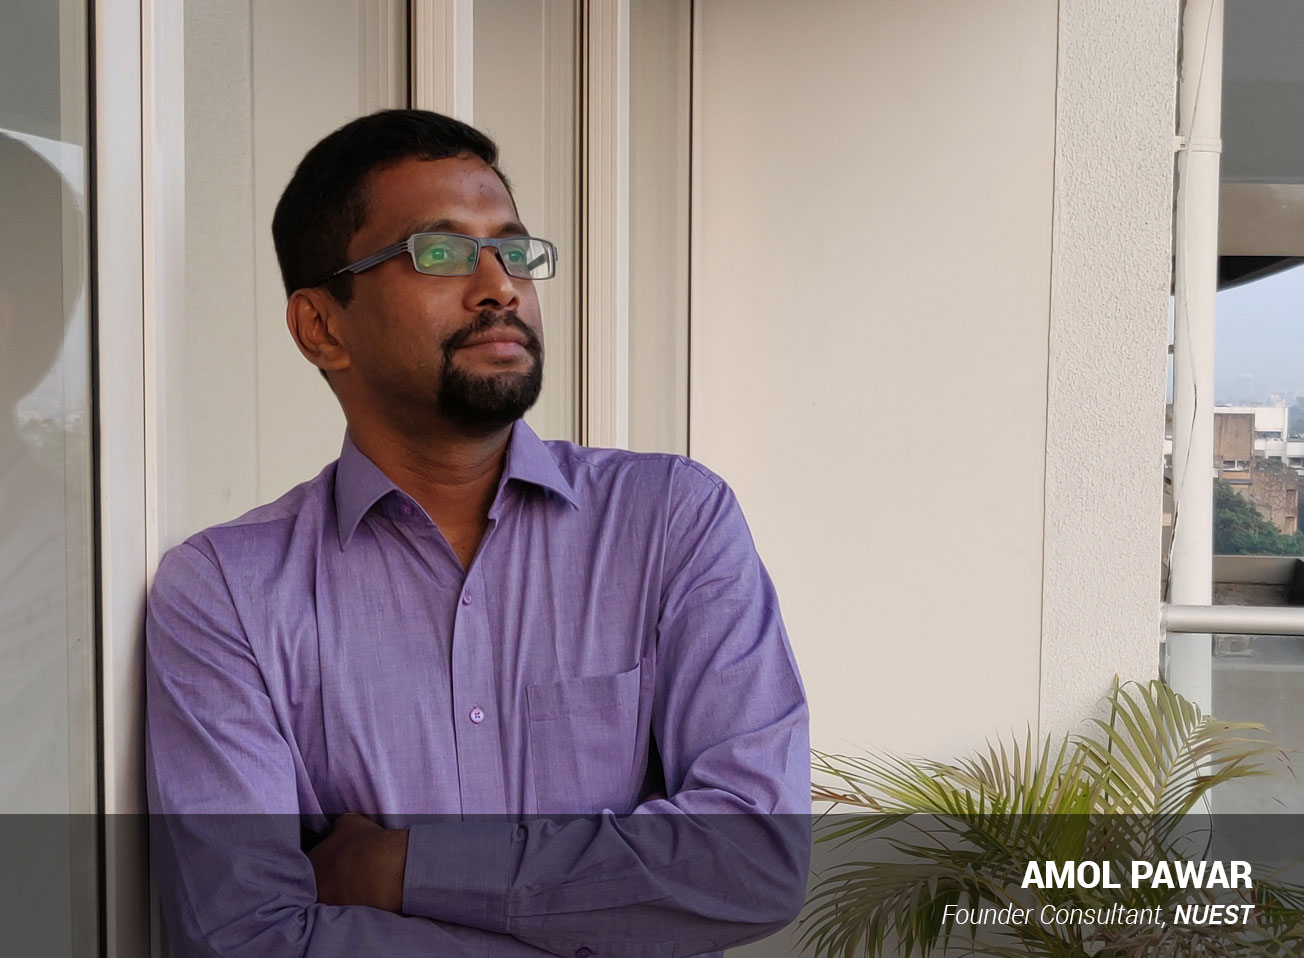 Amol Pawar, Founder Consultant, NUEST